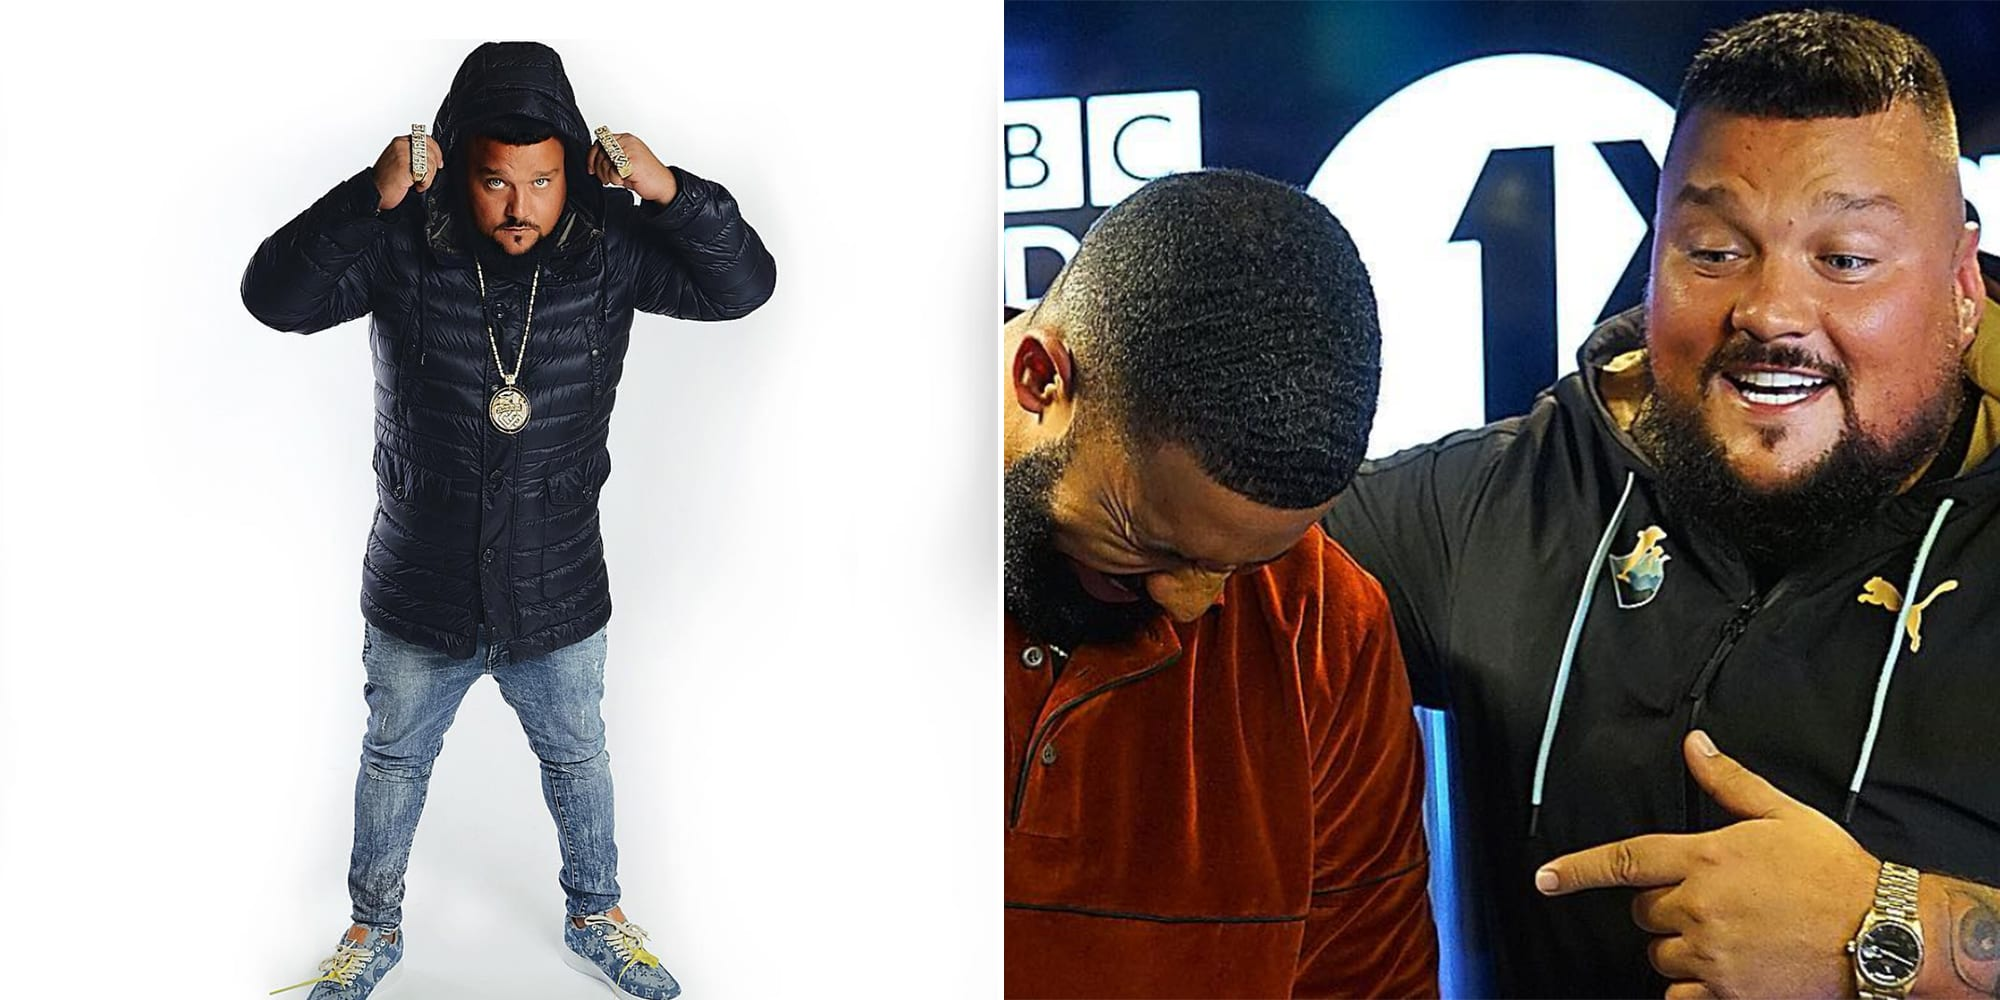 Charlie Sloth leaves 1Xtra charlie sloth fire in the booth charlie sloth exit bbc charlie sloth apple music